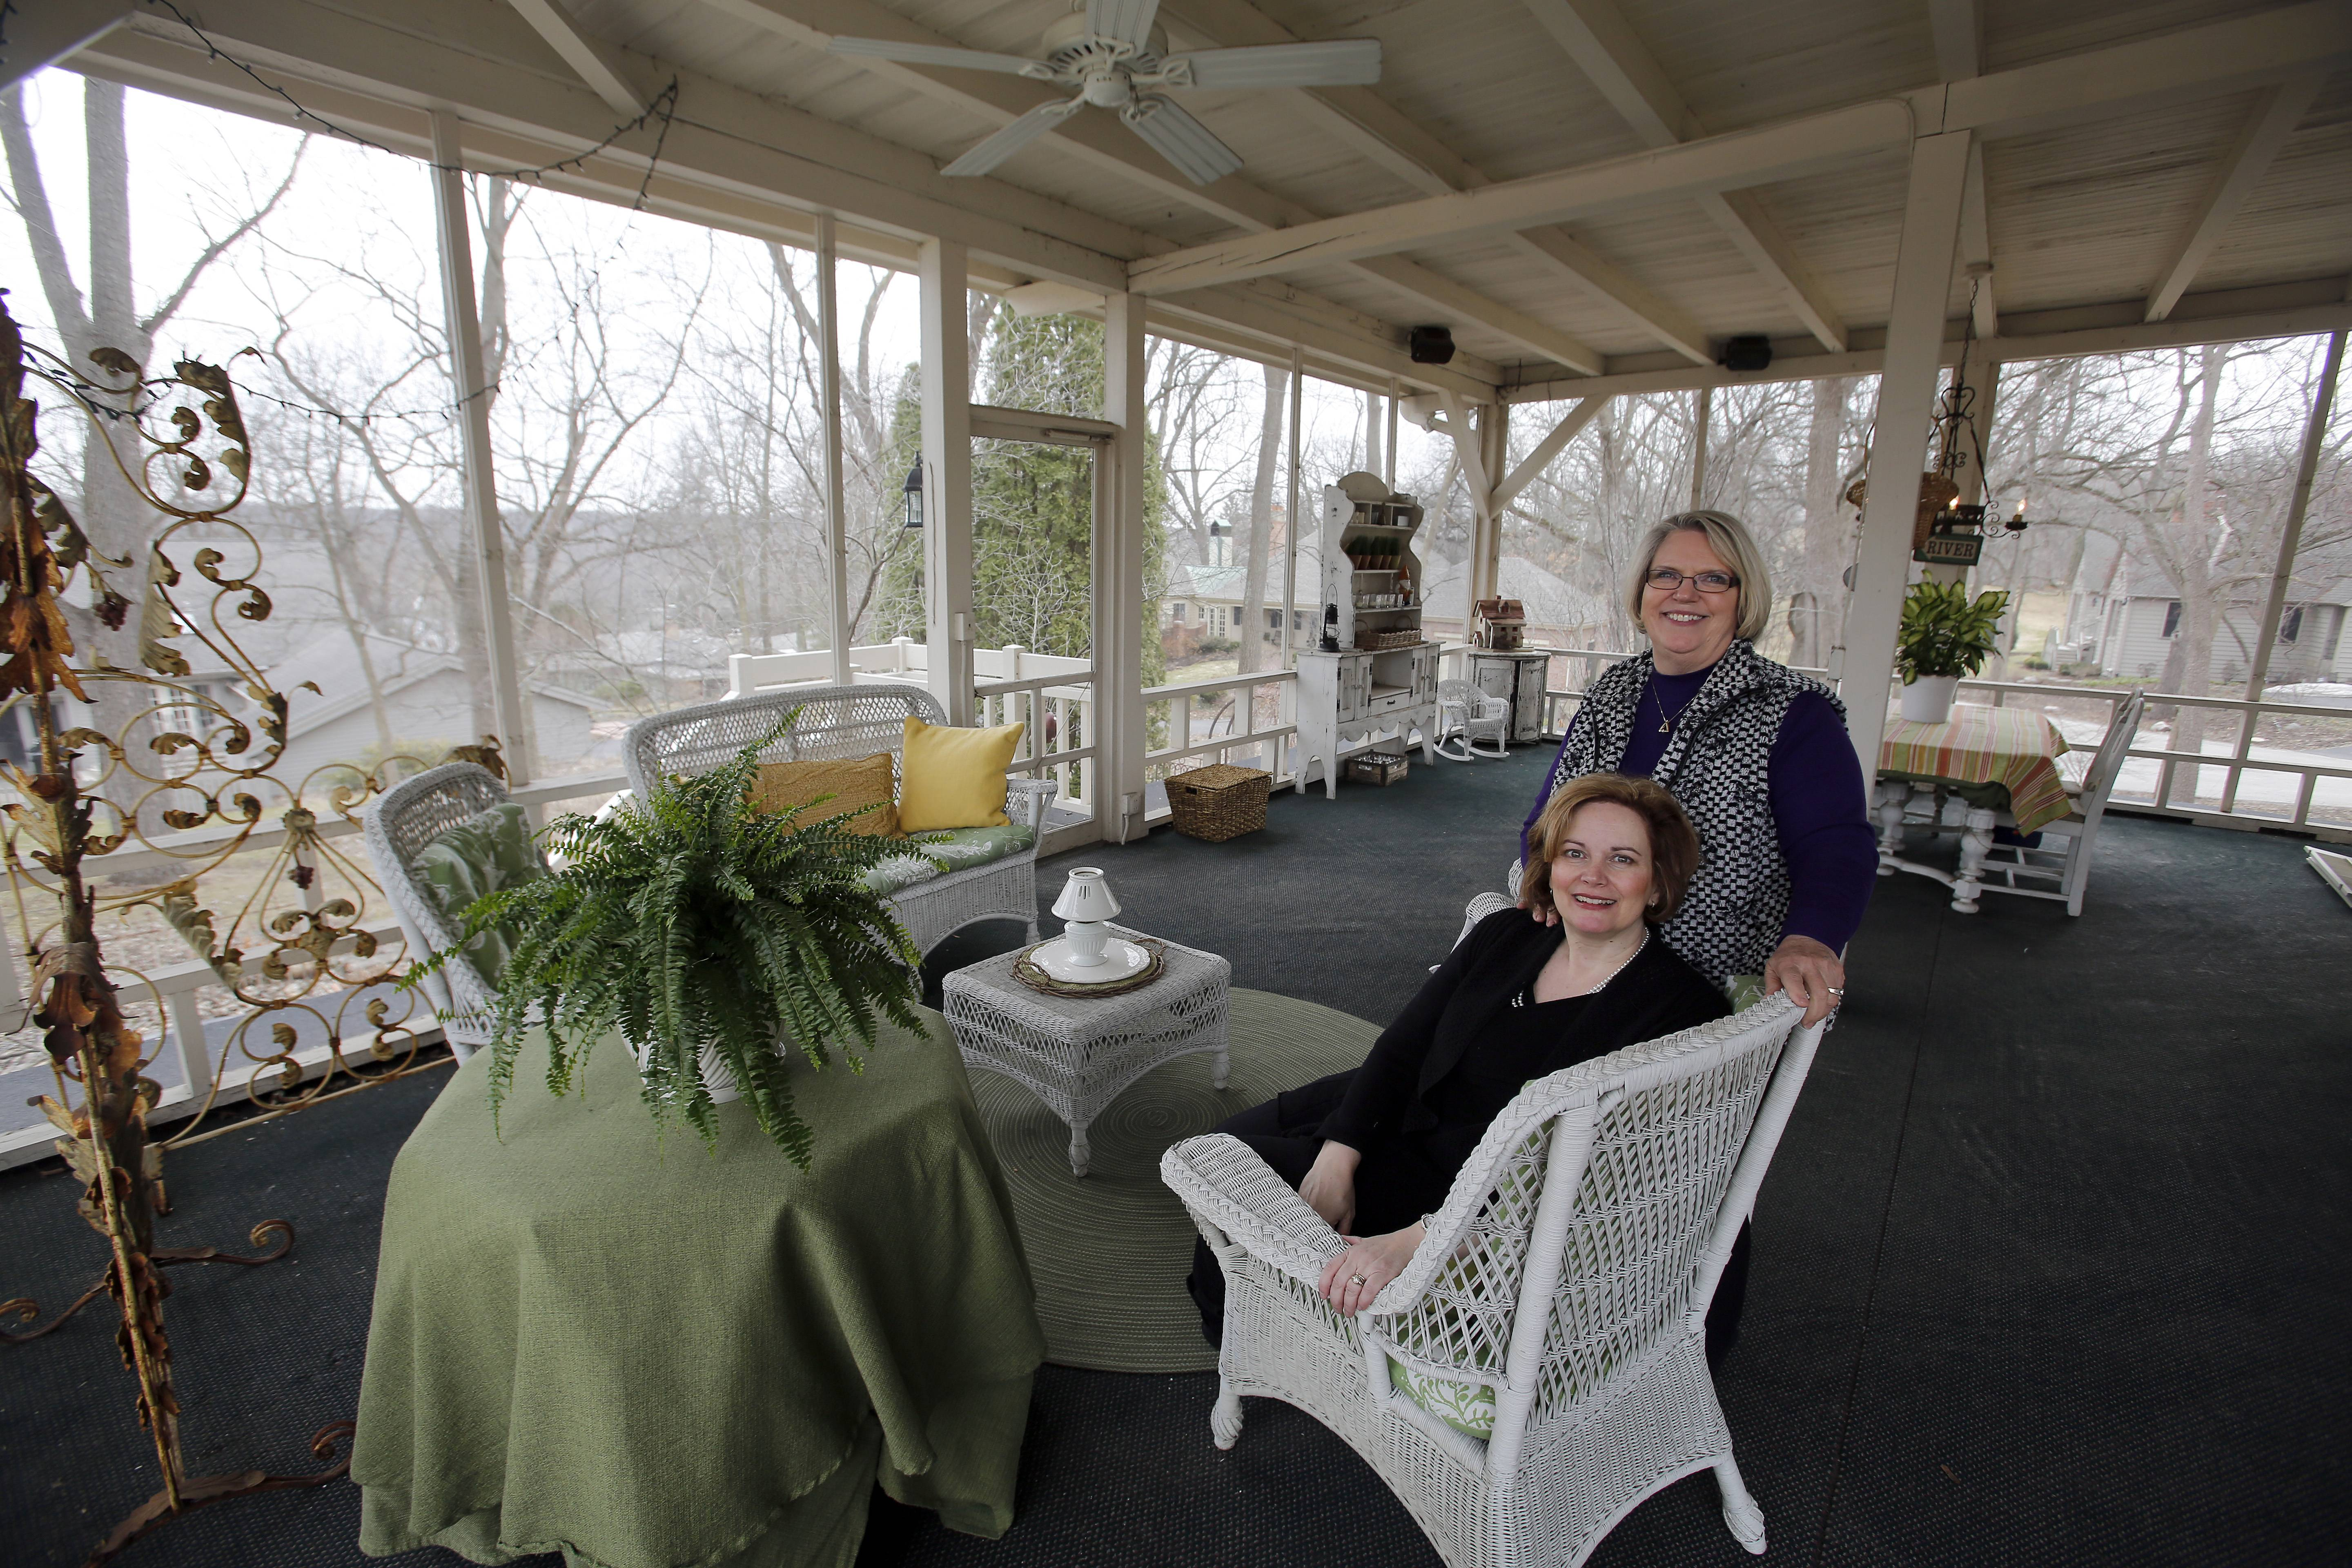 Homeowner Marsha Reinecke, sitting, and Realtor Patti Rambo show a massive rear porch the Reinecke family has enjoyed over the years.